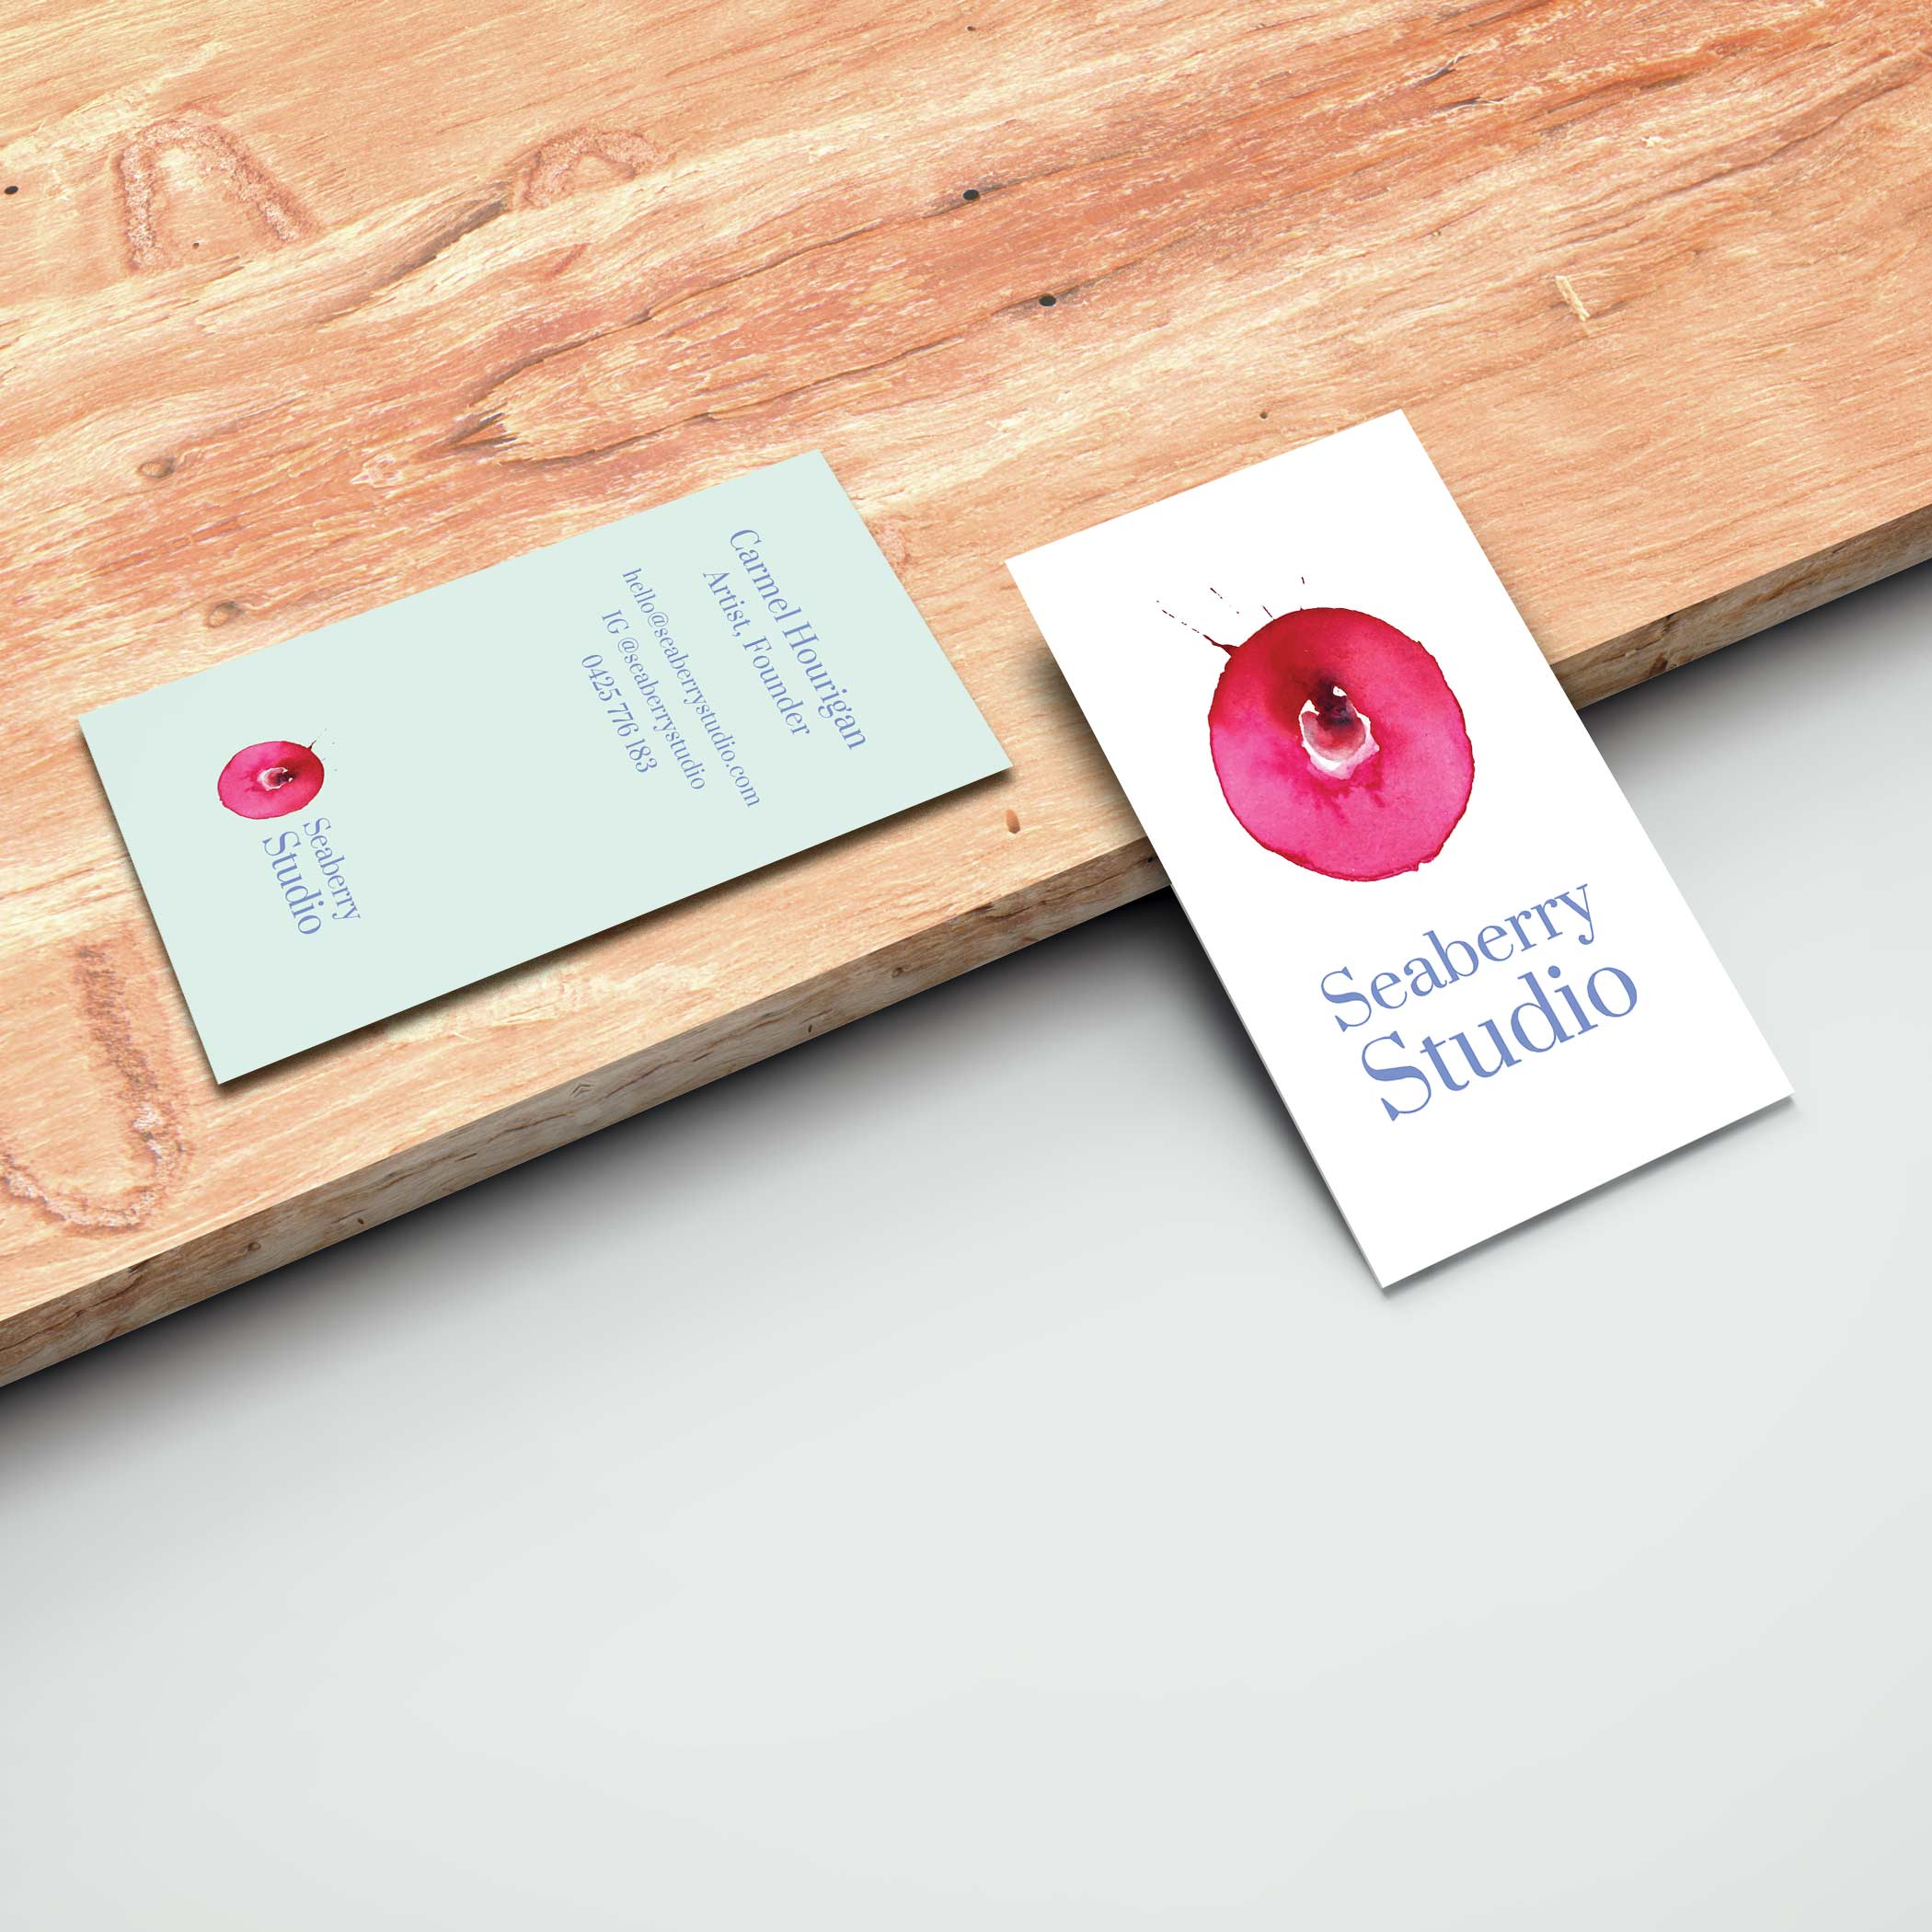 Business card and logo design by Paige Digital for Seaberry studio